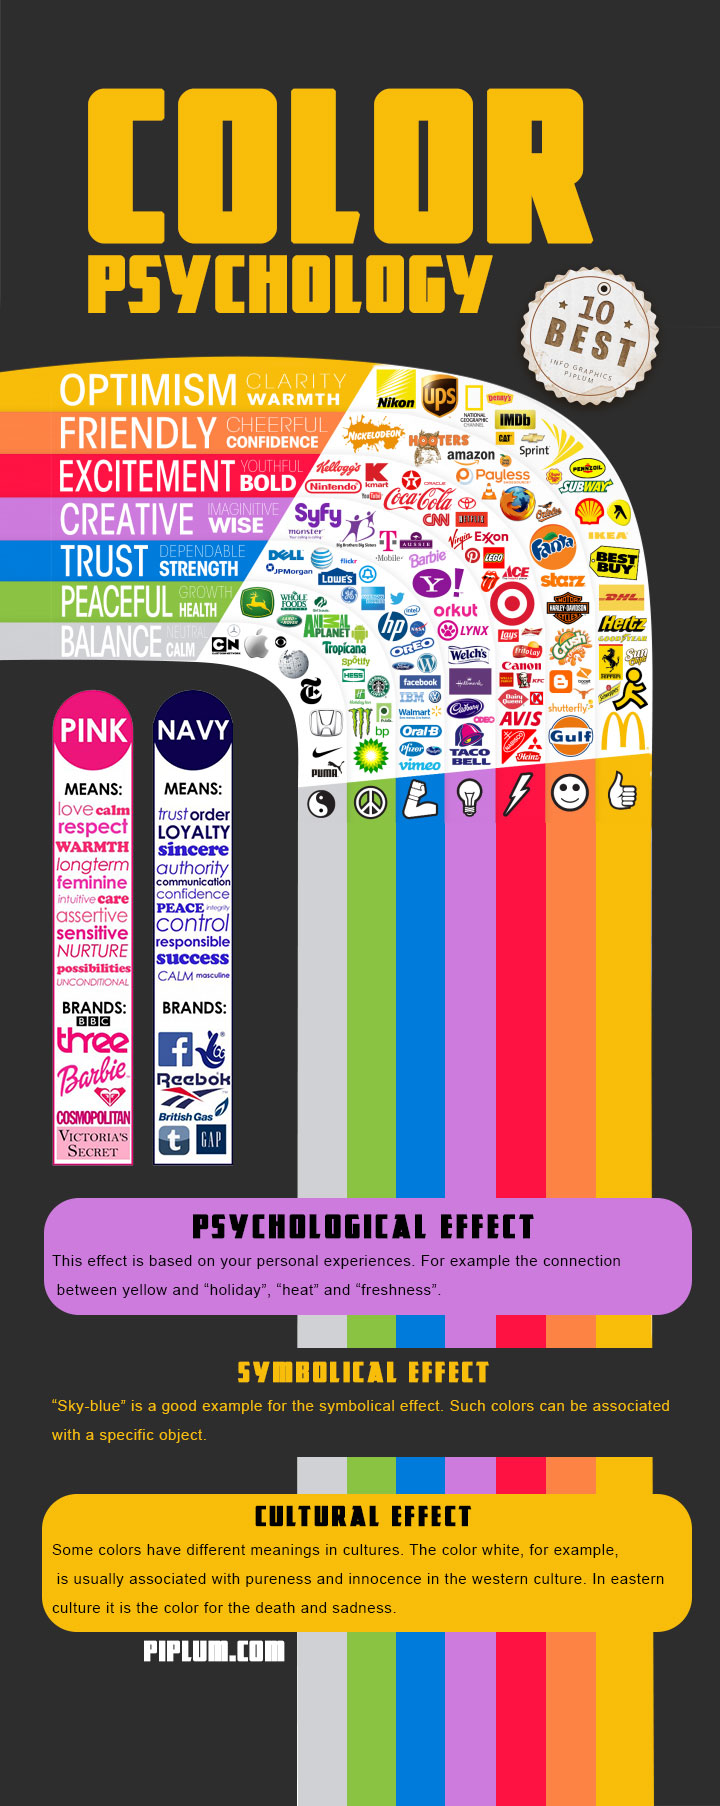 What does different color mean in the famous brands